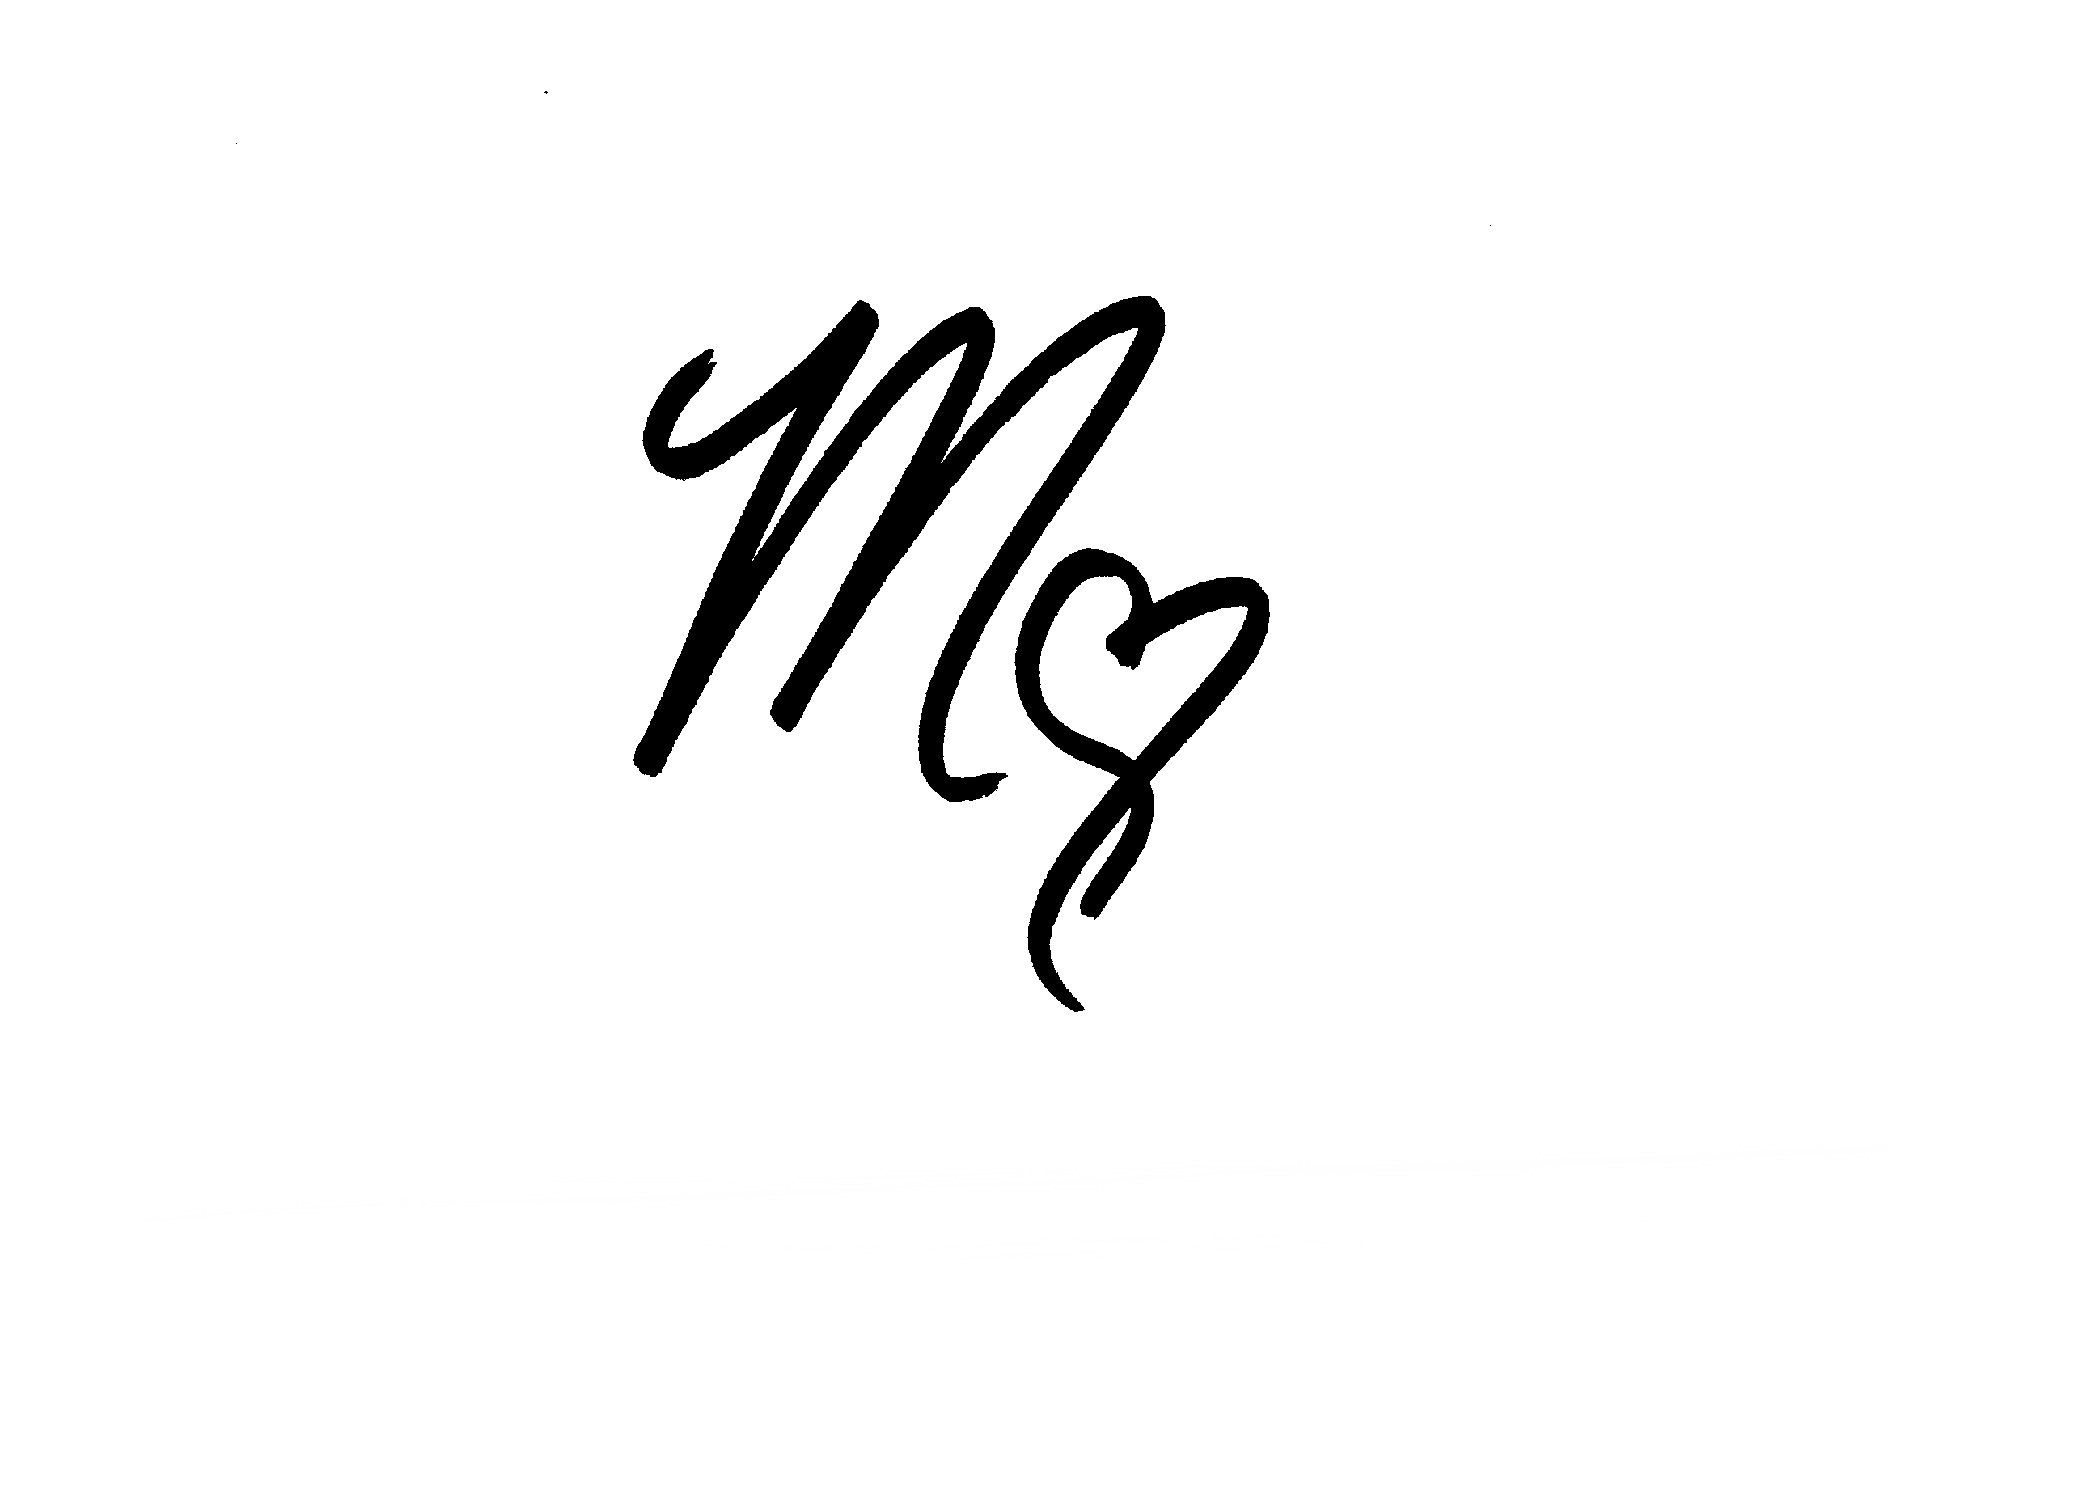 Mri Scott ElBey Signature